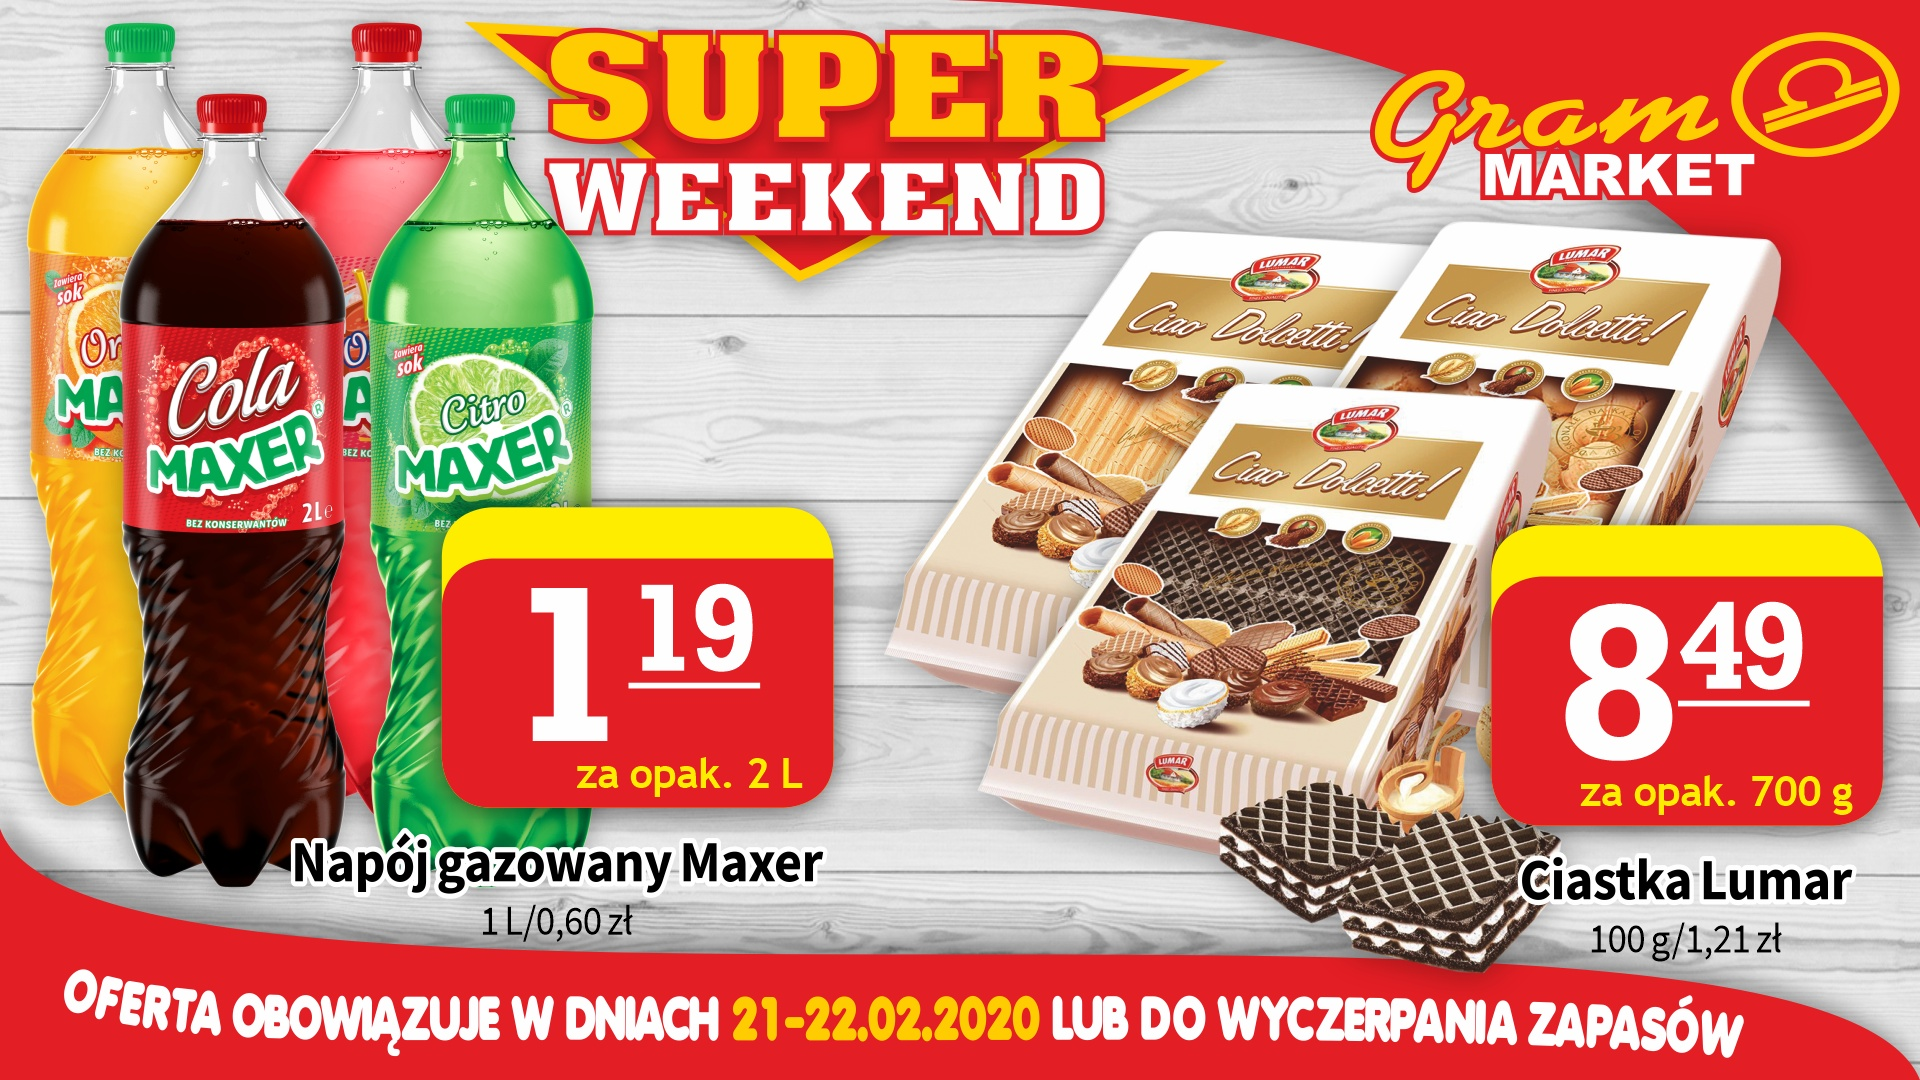 SUPER_WEEKEND-21-22-9